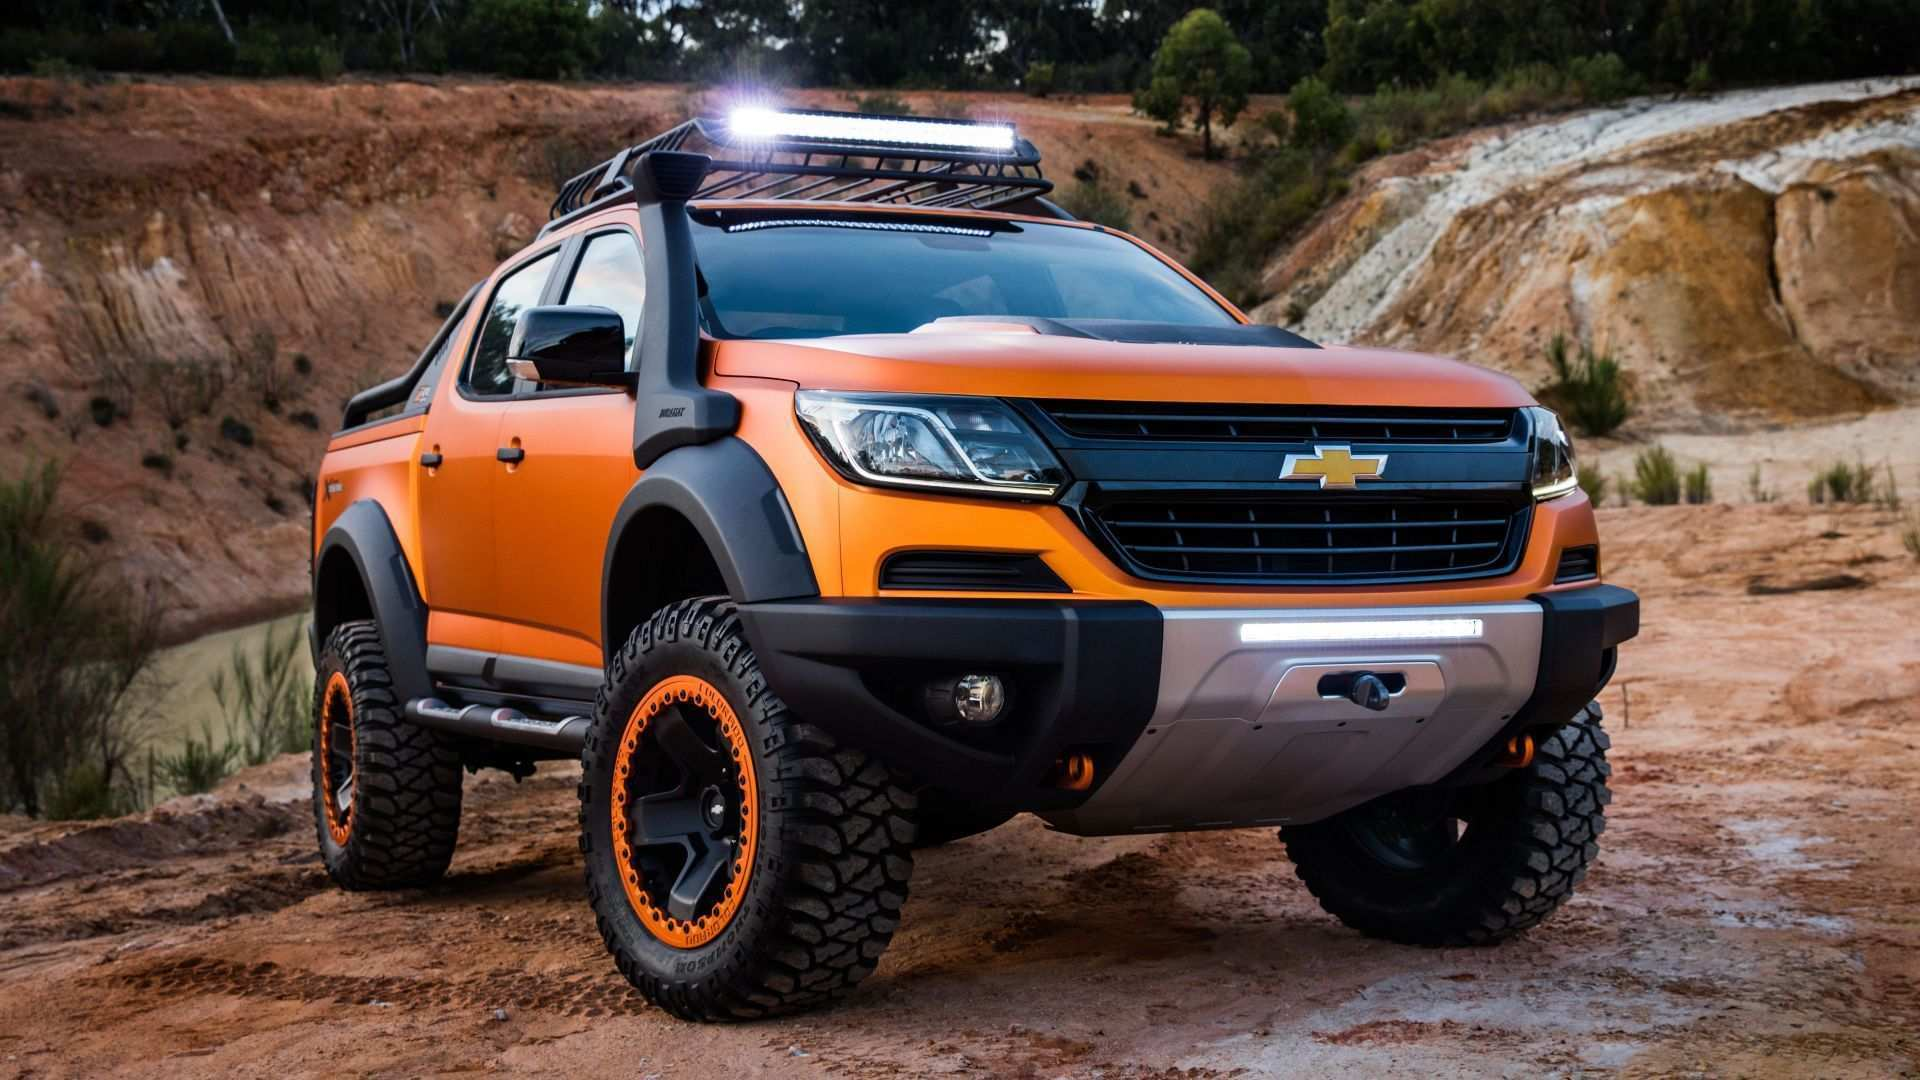 71 Best Review The Chevrolet 2019 Zr2 New Concept Pictures for The Chevrolet 2019 Zr2 New Concept